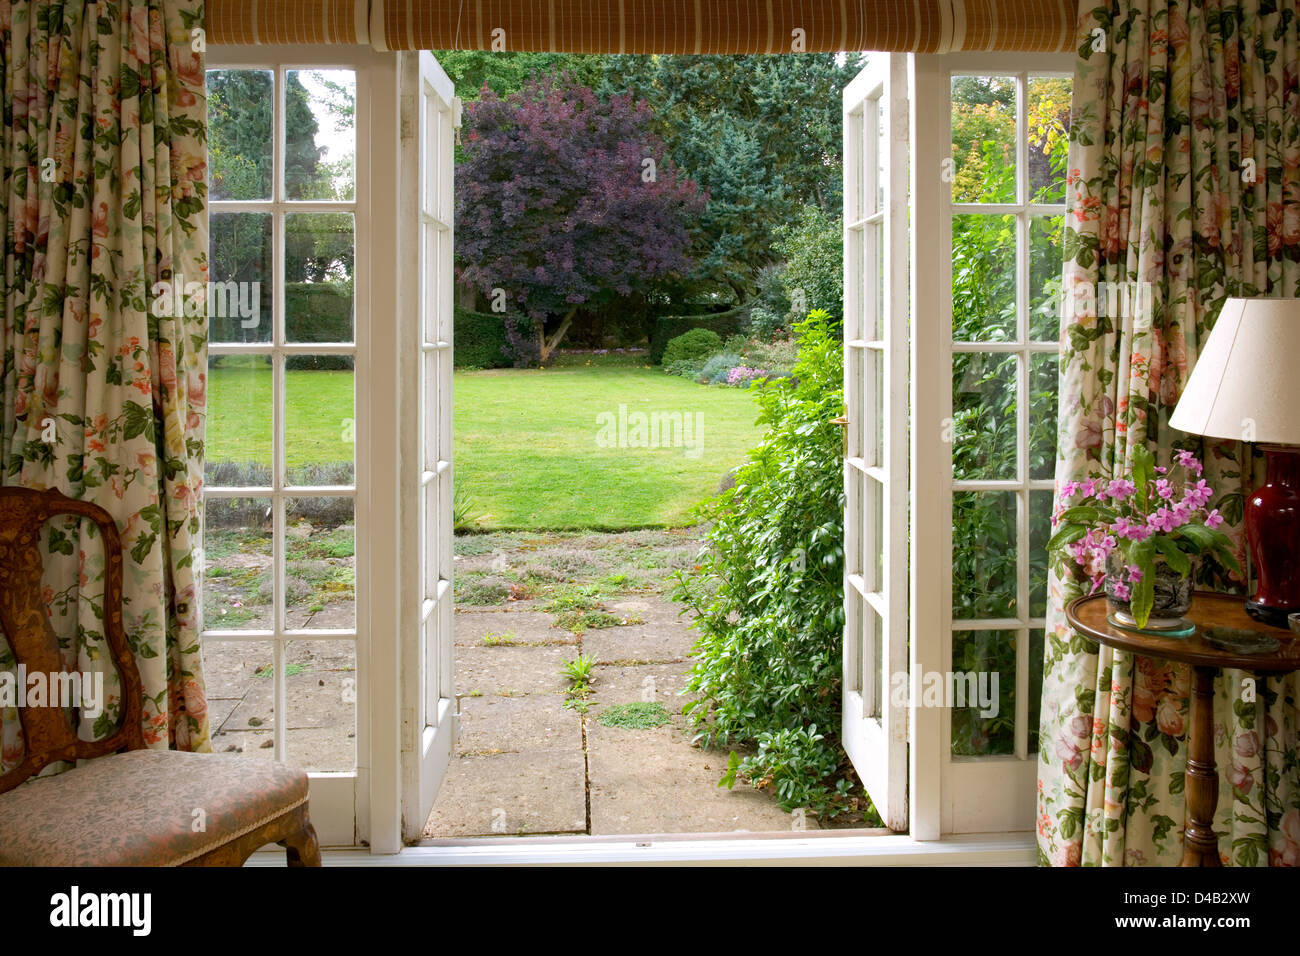 French Doors Interior Stock Photos Amp French Doors Interior